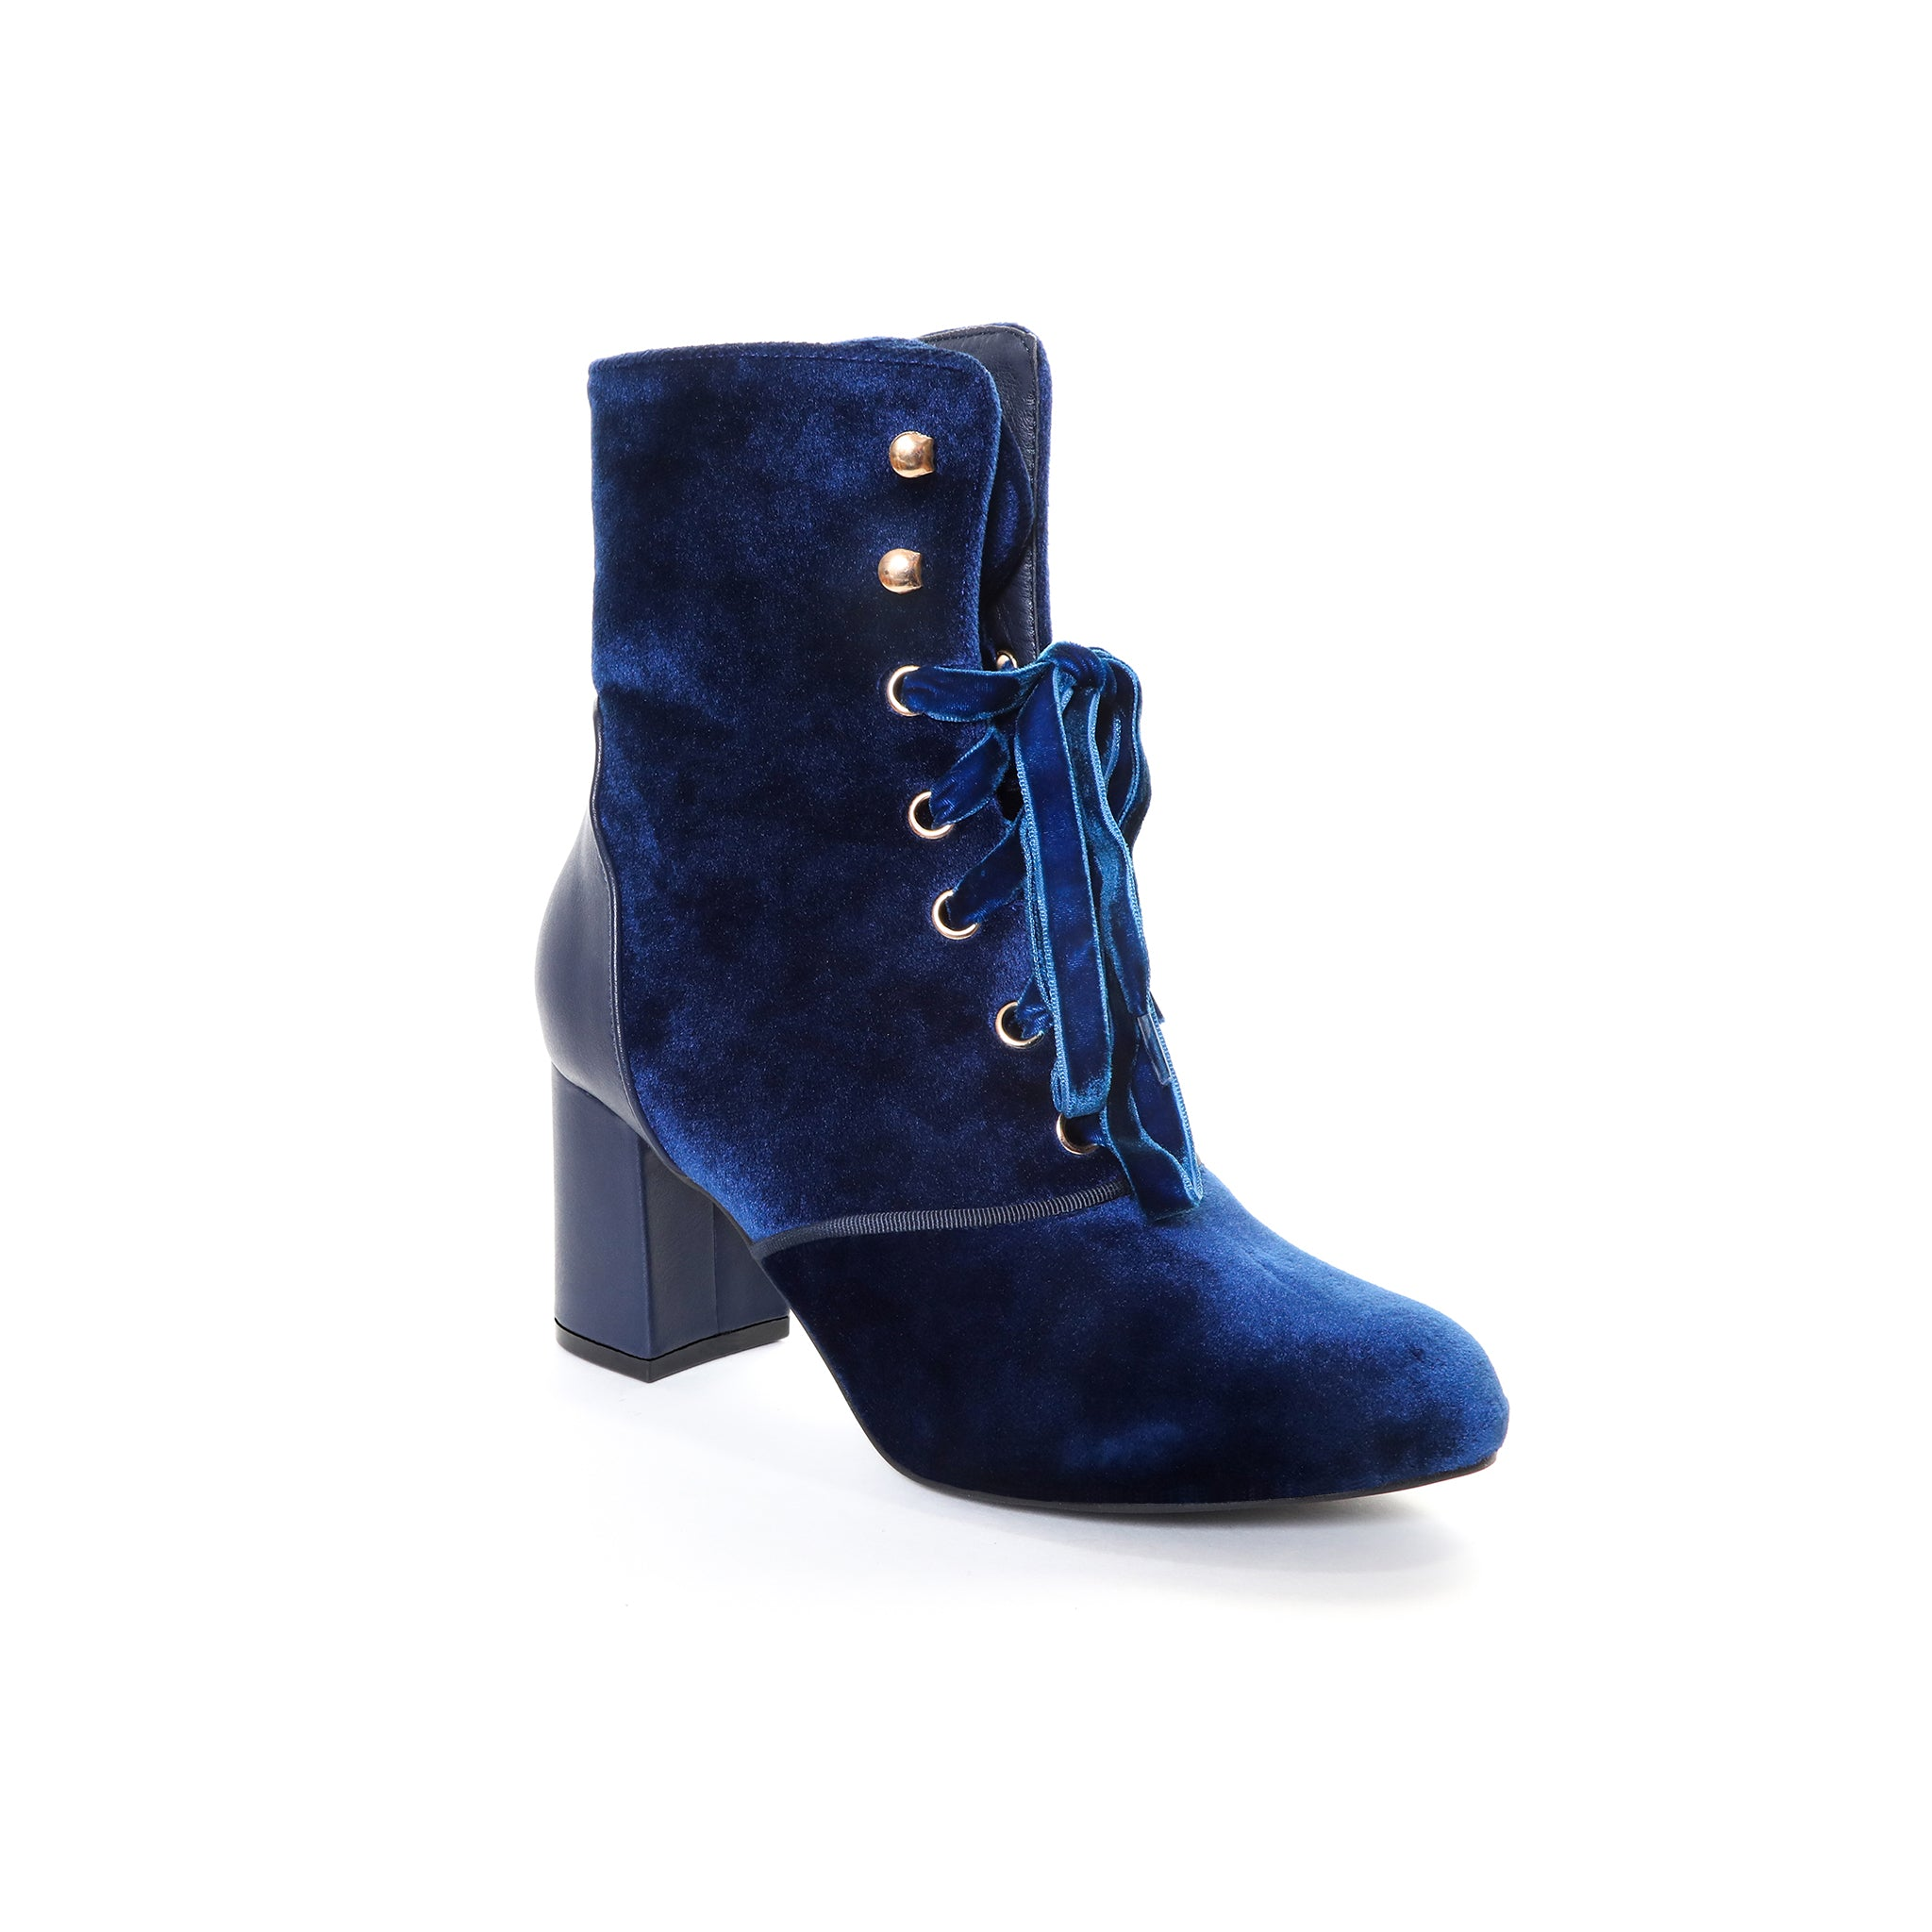 Claudia by Dolce Nome | Lace Up Heel Boots in Blue (main view)